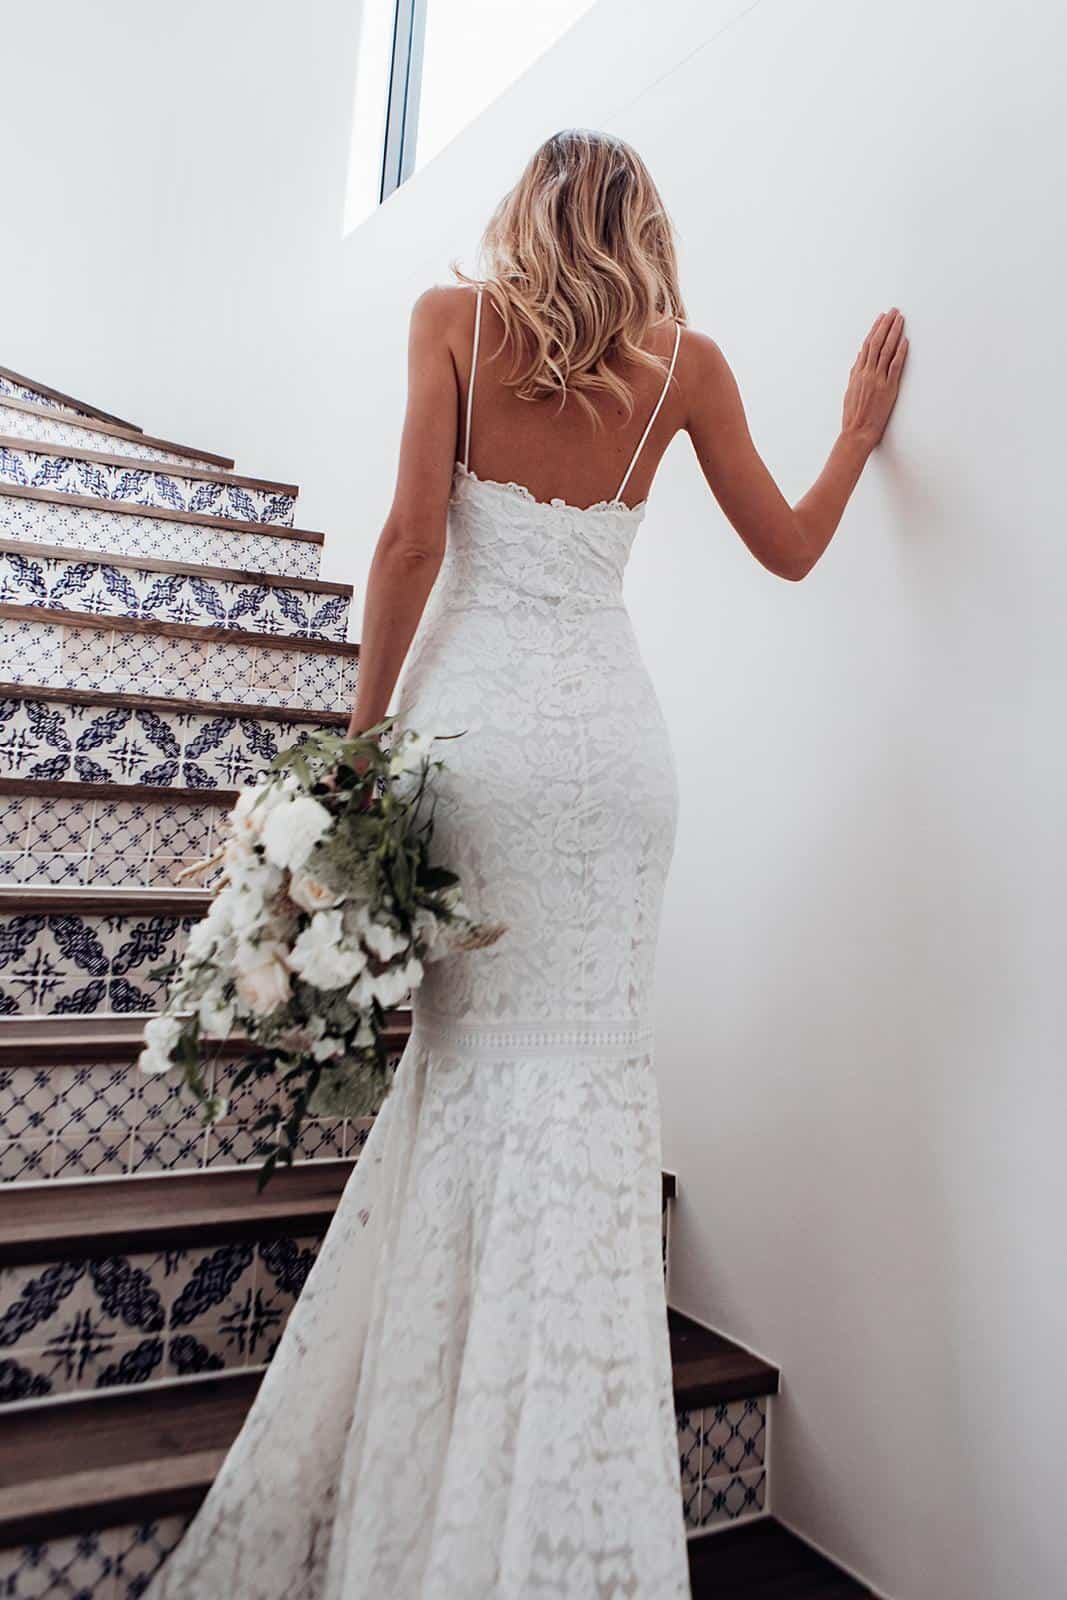 Bohemian Wedding Dress Inspiration French Lace Dress Handmade by Grace Loves Lace Hart